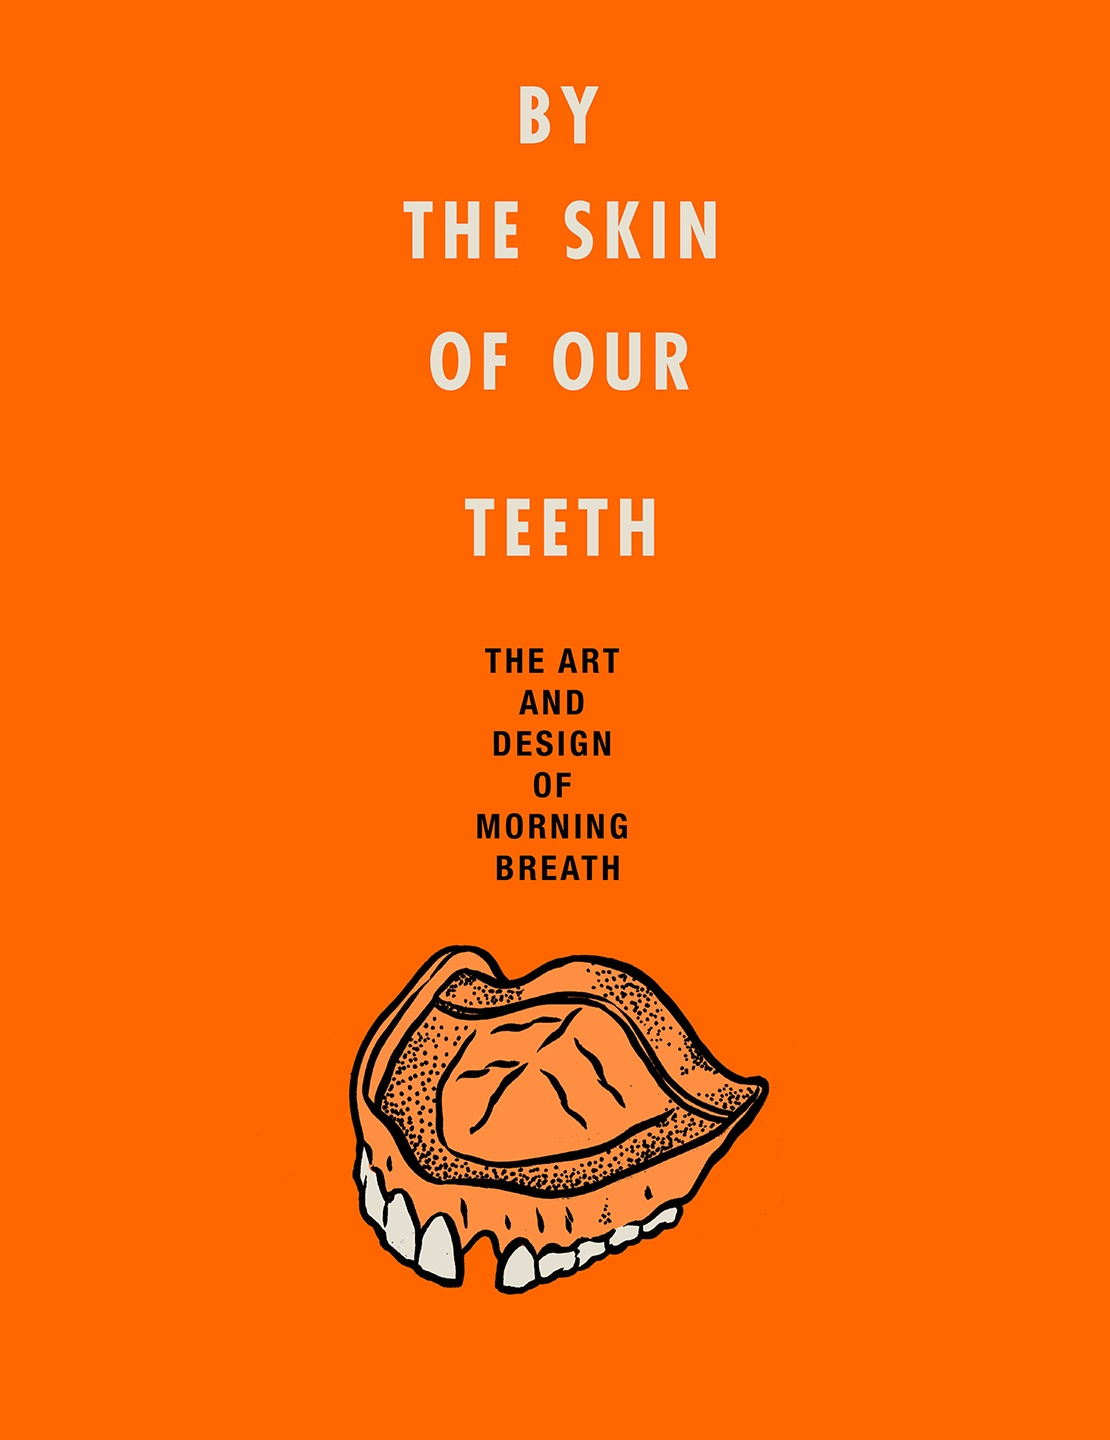 Book Launch: By the Skin of Our Teeth: The Art and Design of Morning Breath by Jason Noto & Doug Cunningham